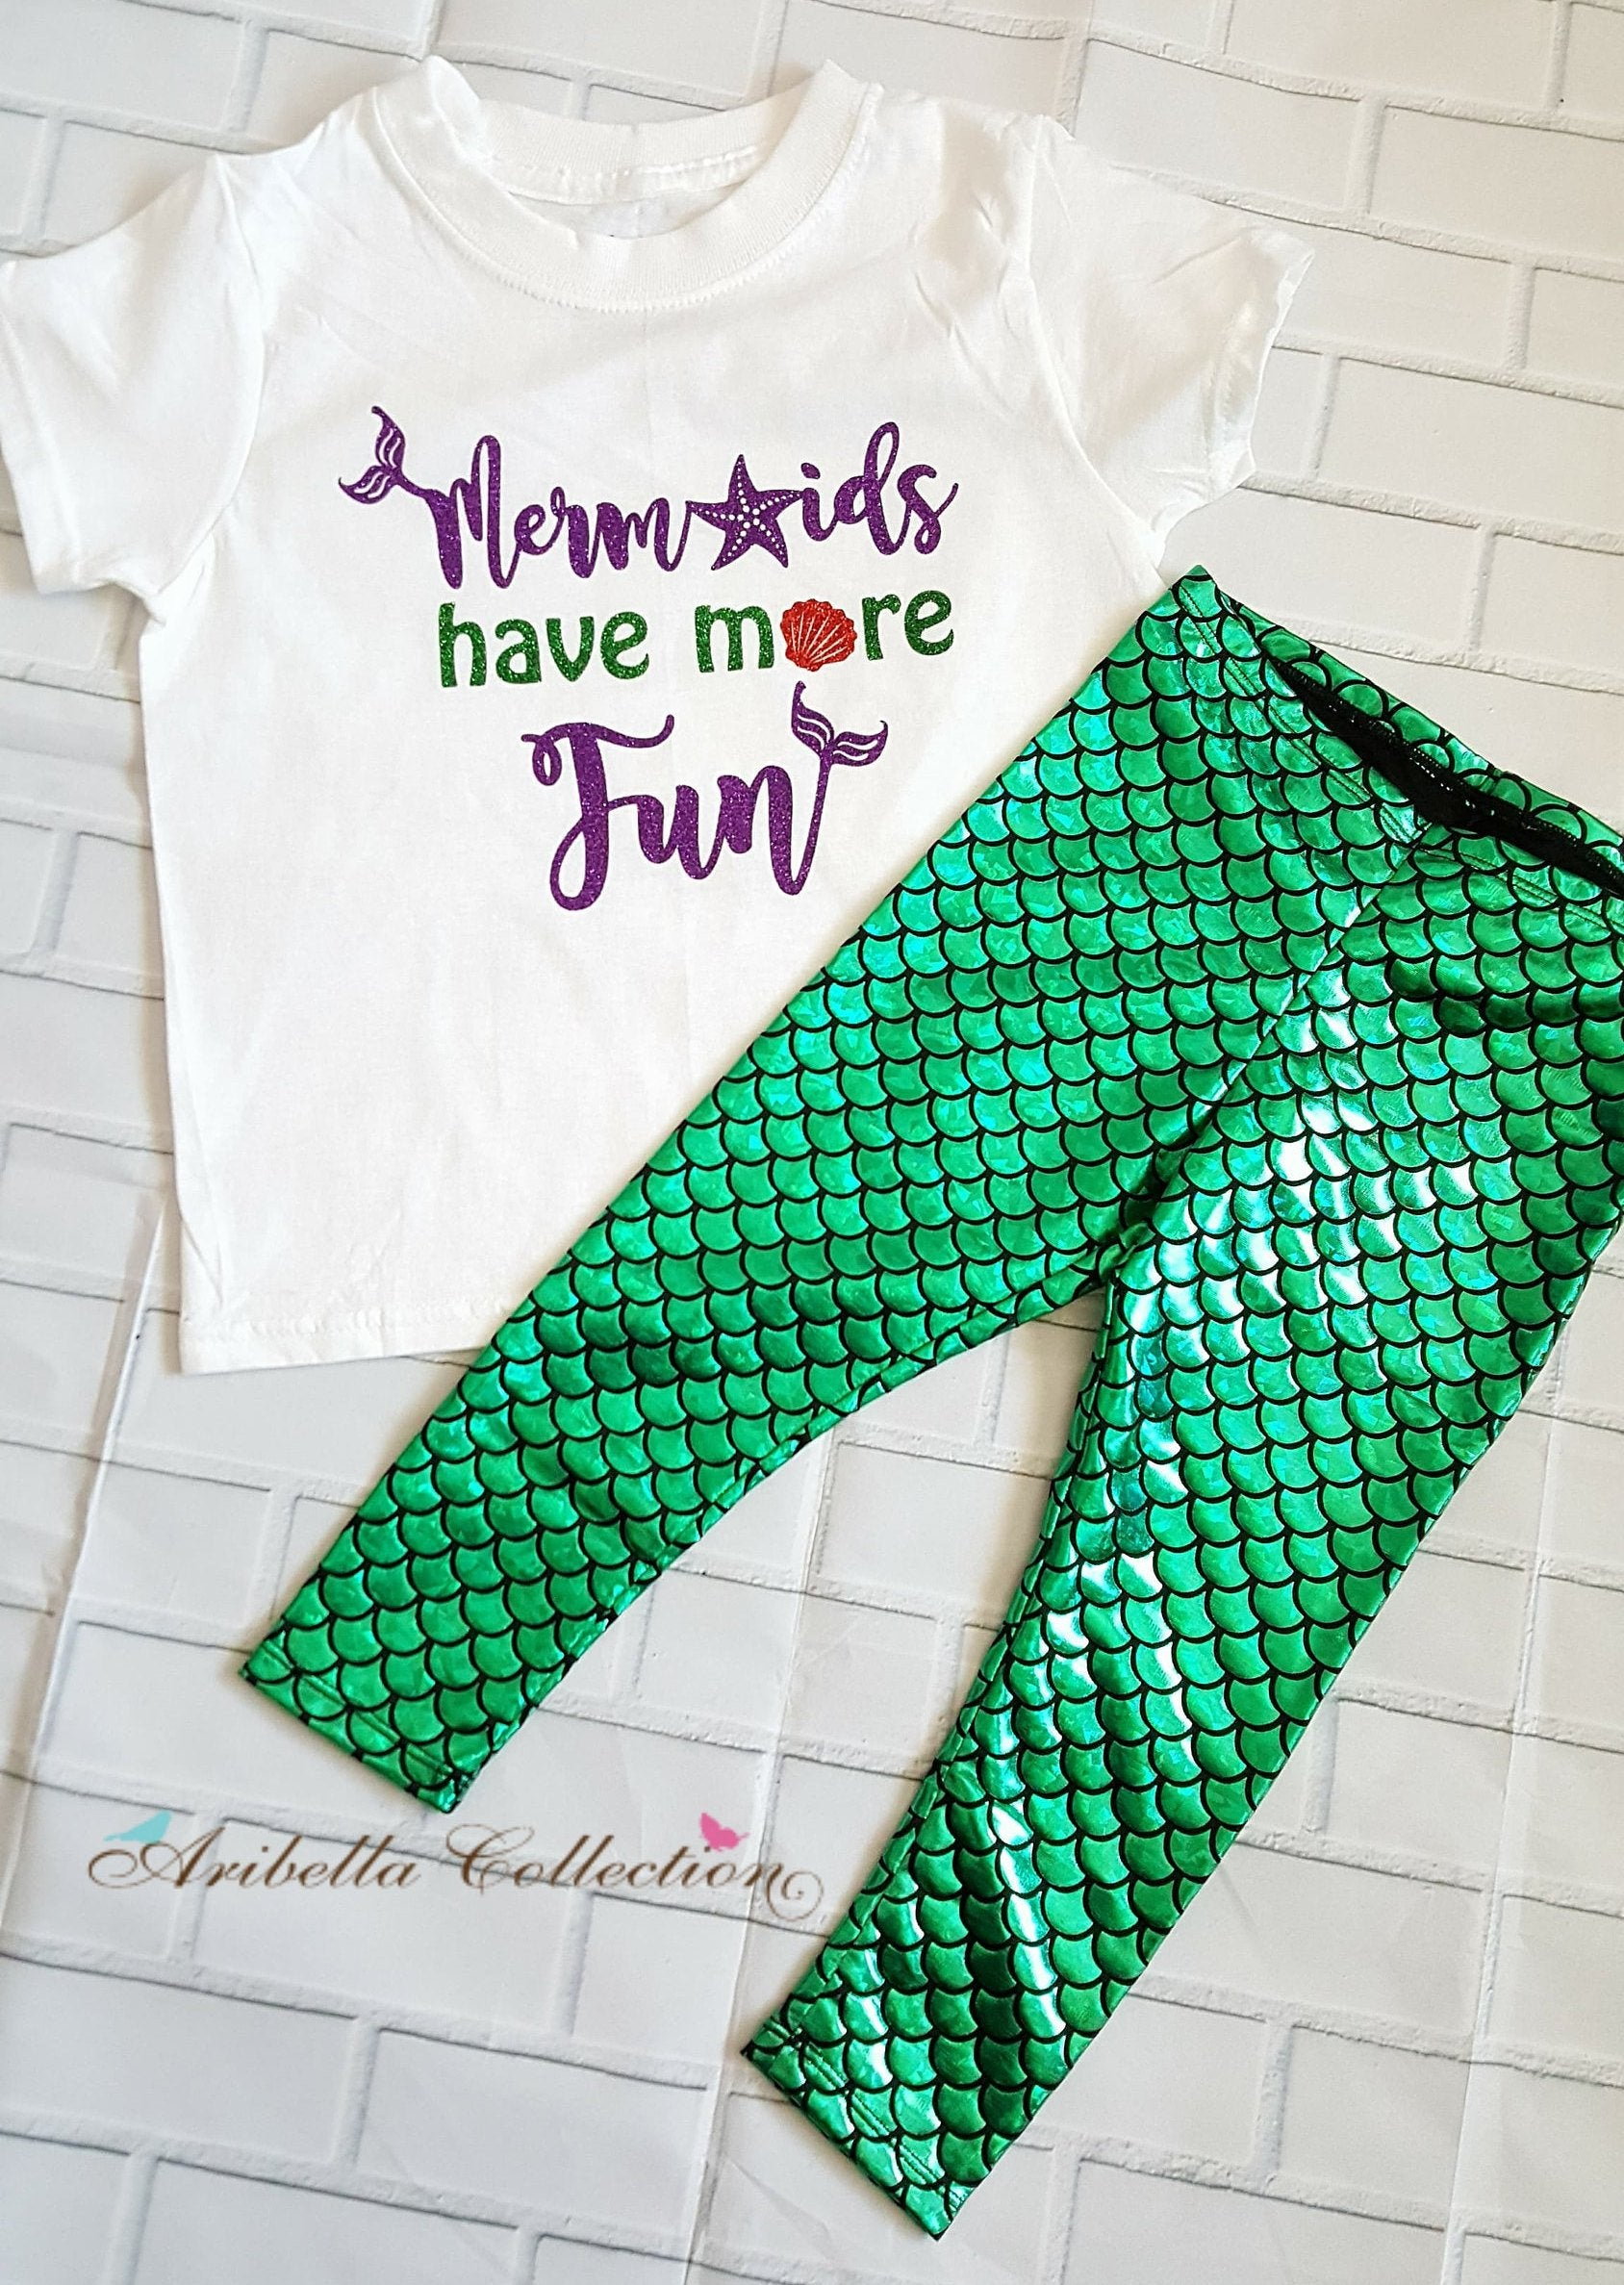 64f57891082 Mermaids Have More Fun Outfit - Bodysuit or T-shirt, Legging, & Bow ...